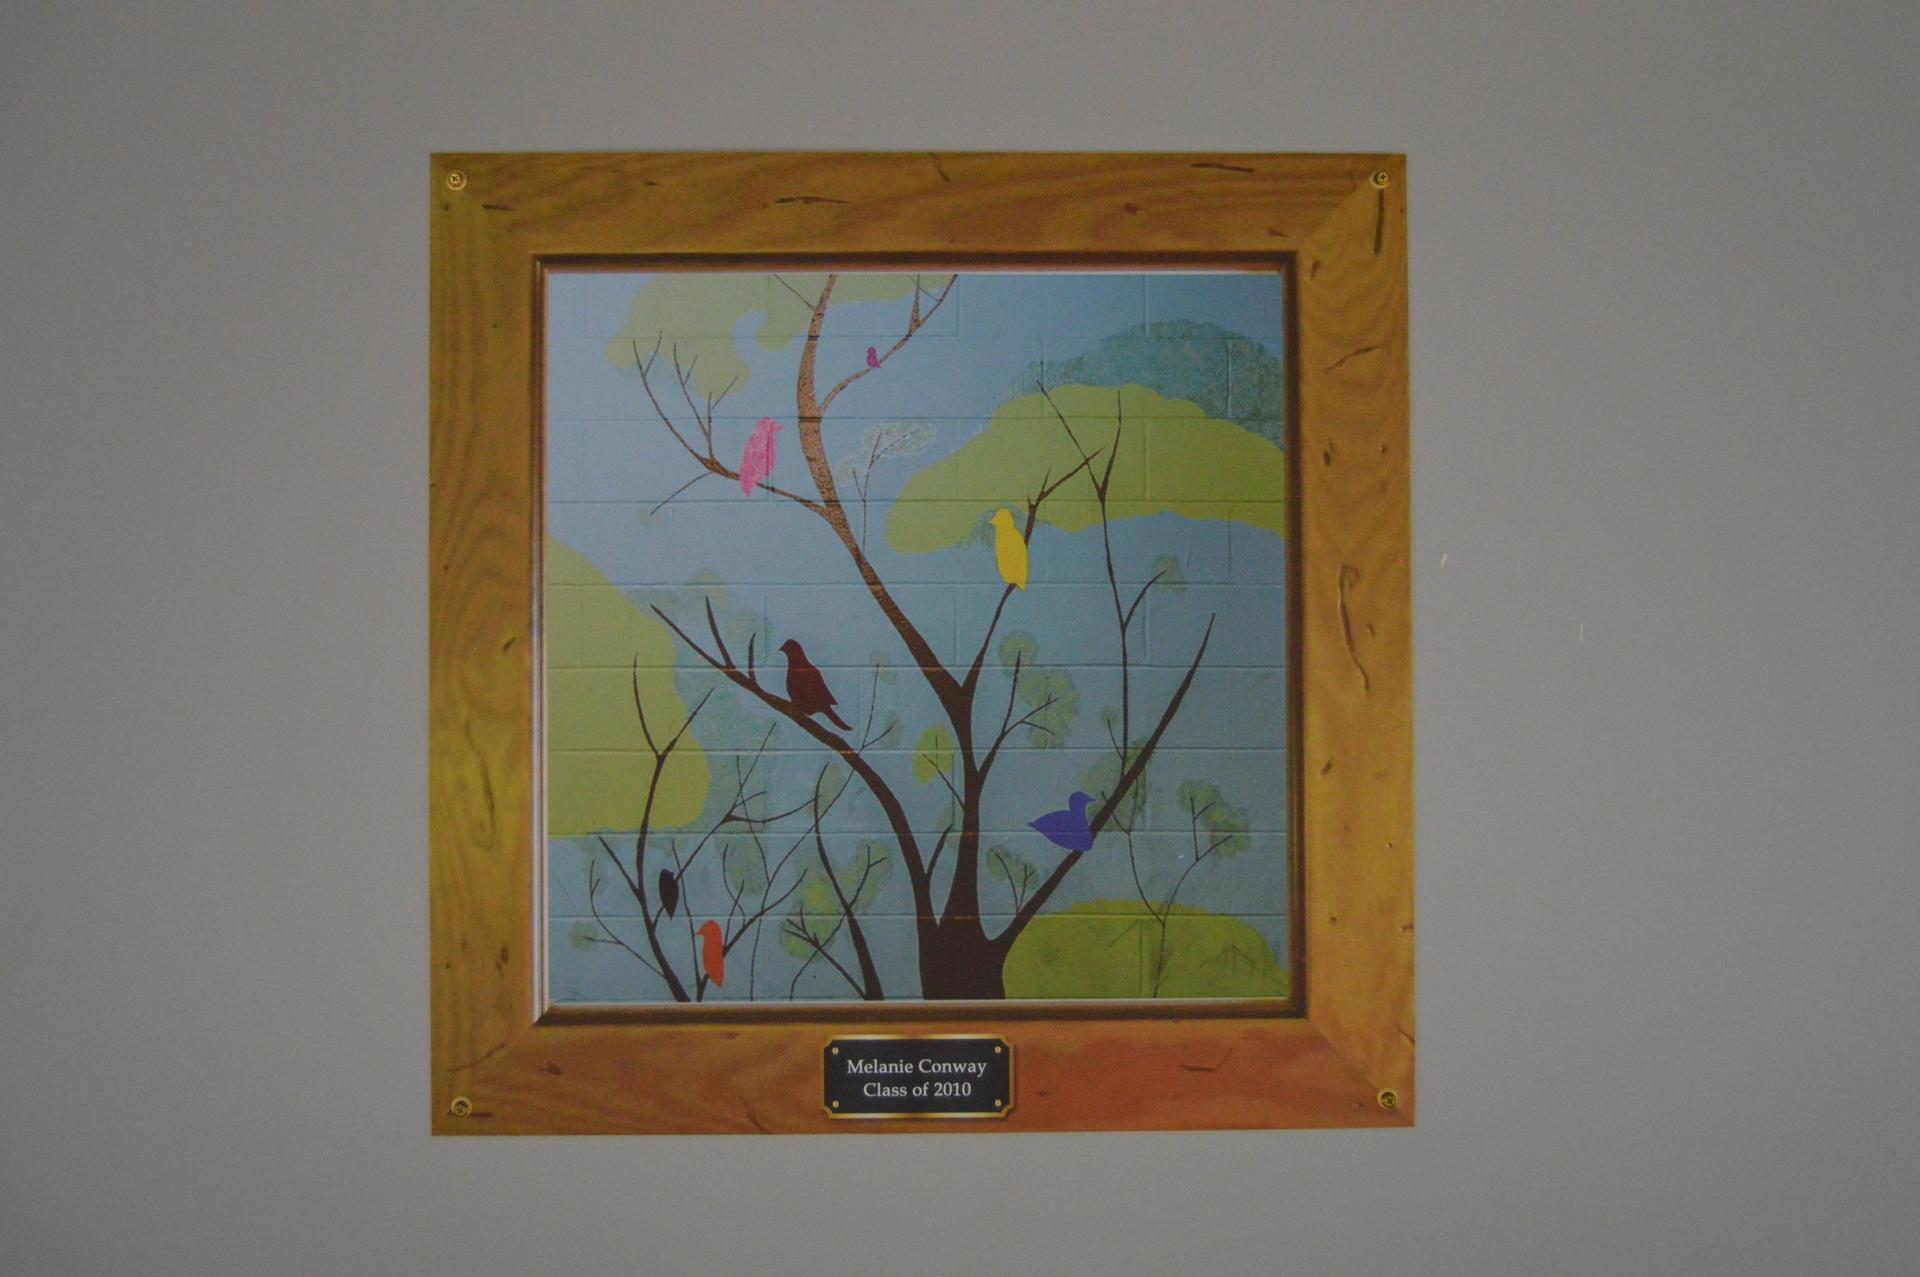 Mural of a brown thin tree with a blue, pink, yellow, orange, purple bird sitting on the branches.